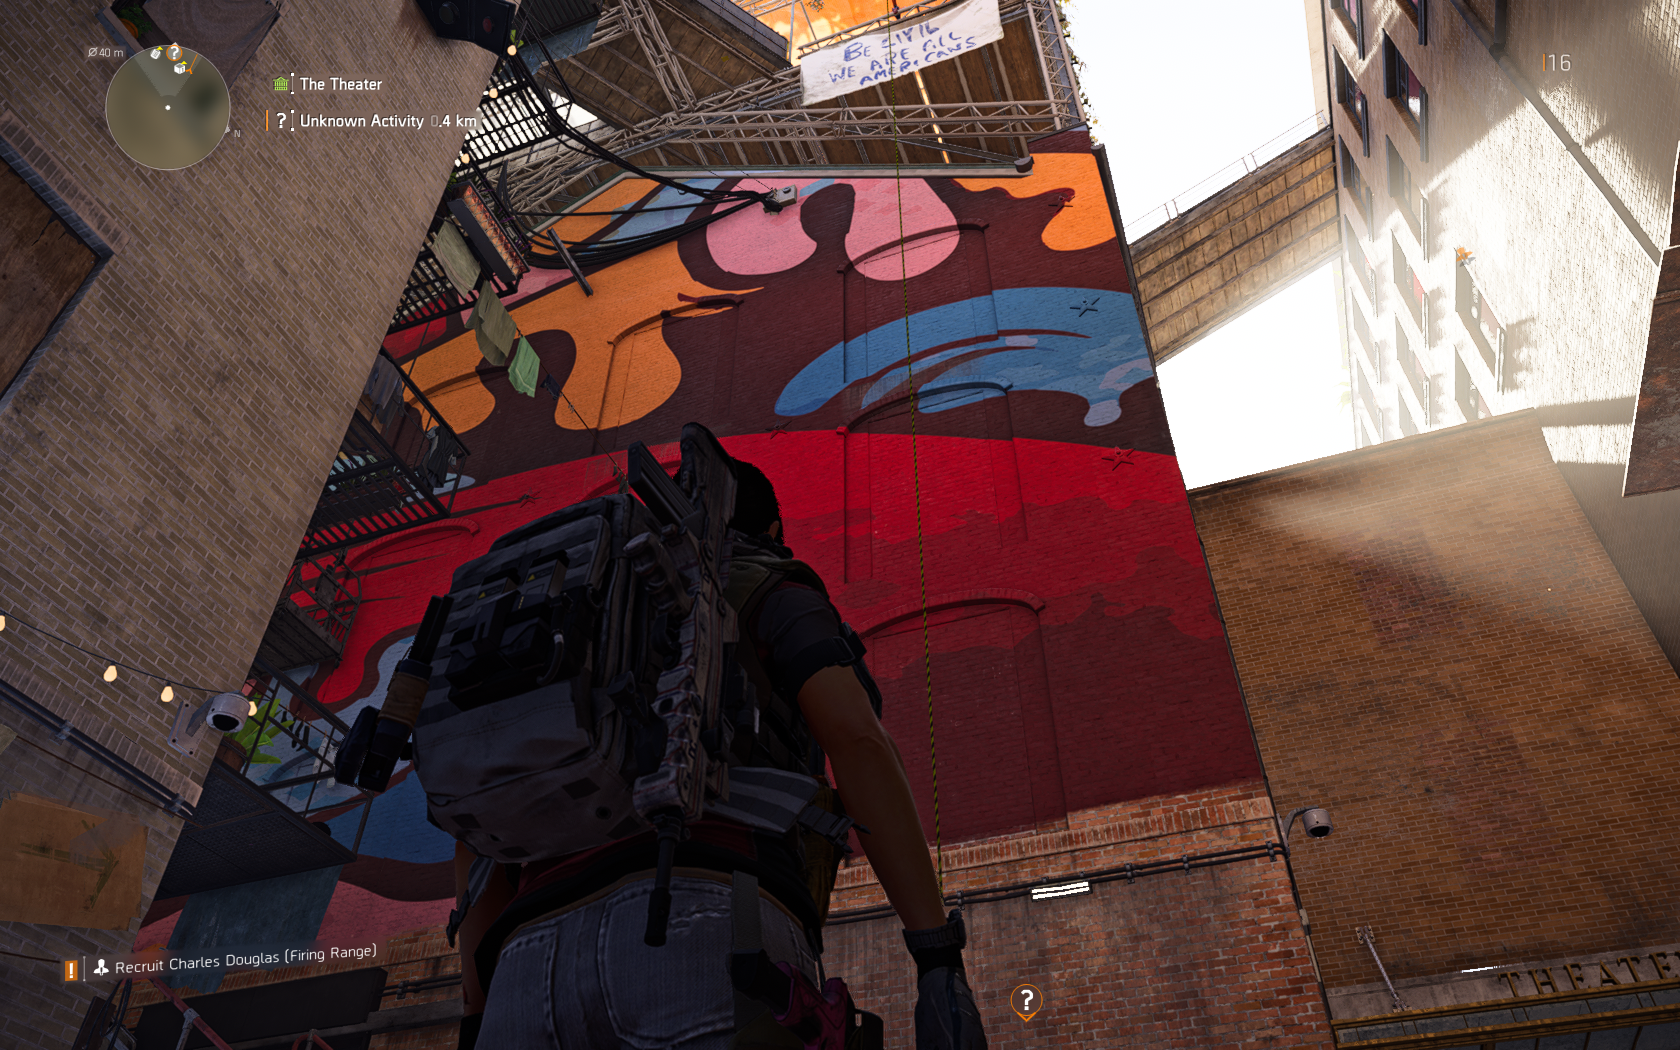 Tom Clancy's The Division 2 Screenshot 2019.03.14 - 21.12.46.34.png